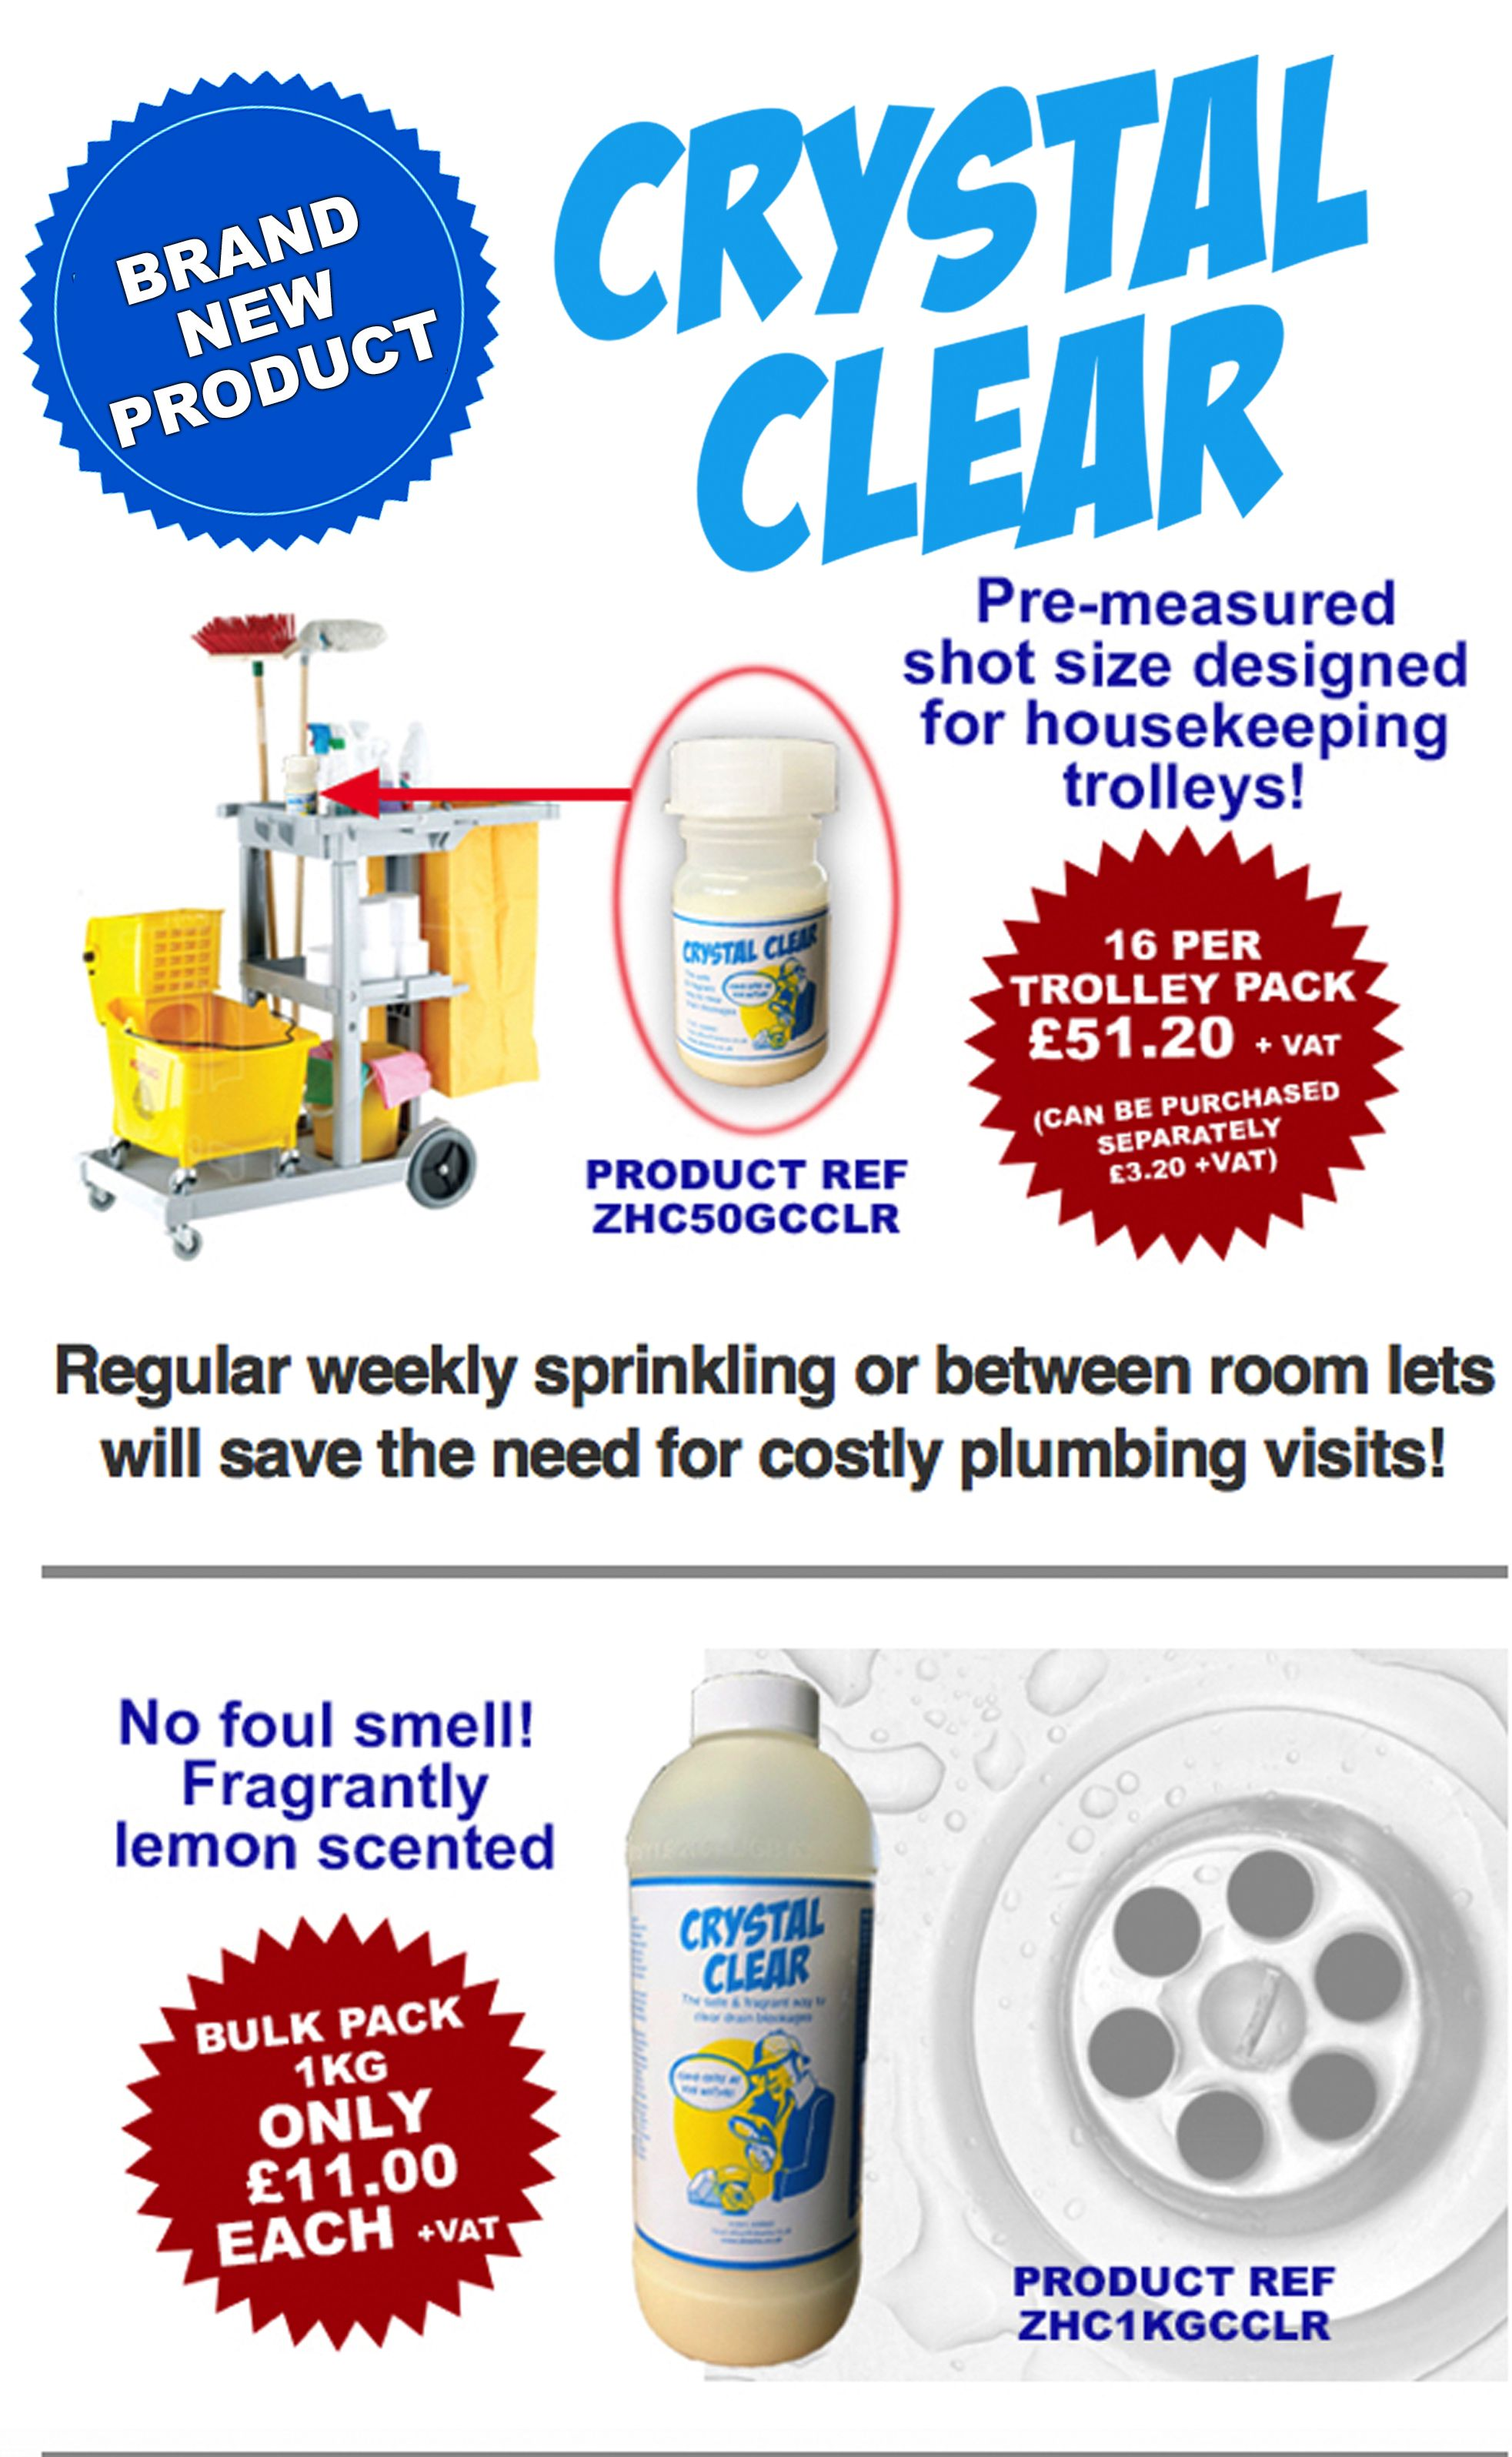 BRAND NEW PRODUCT Crystal Clear Drain Cleaner Lemon